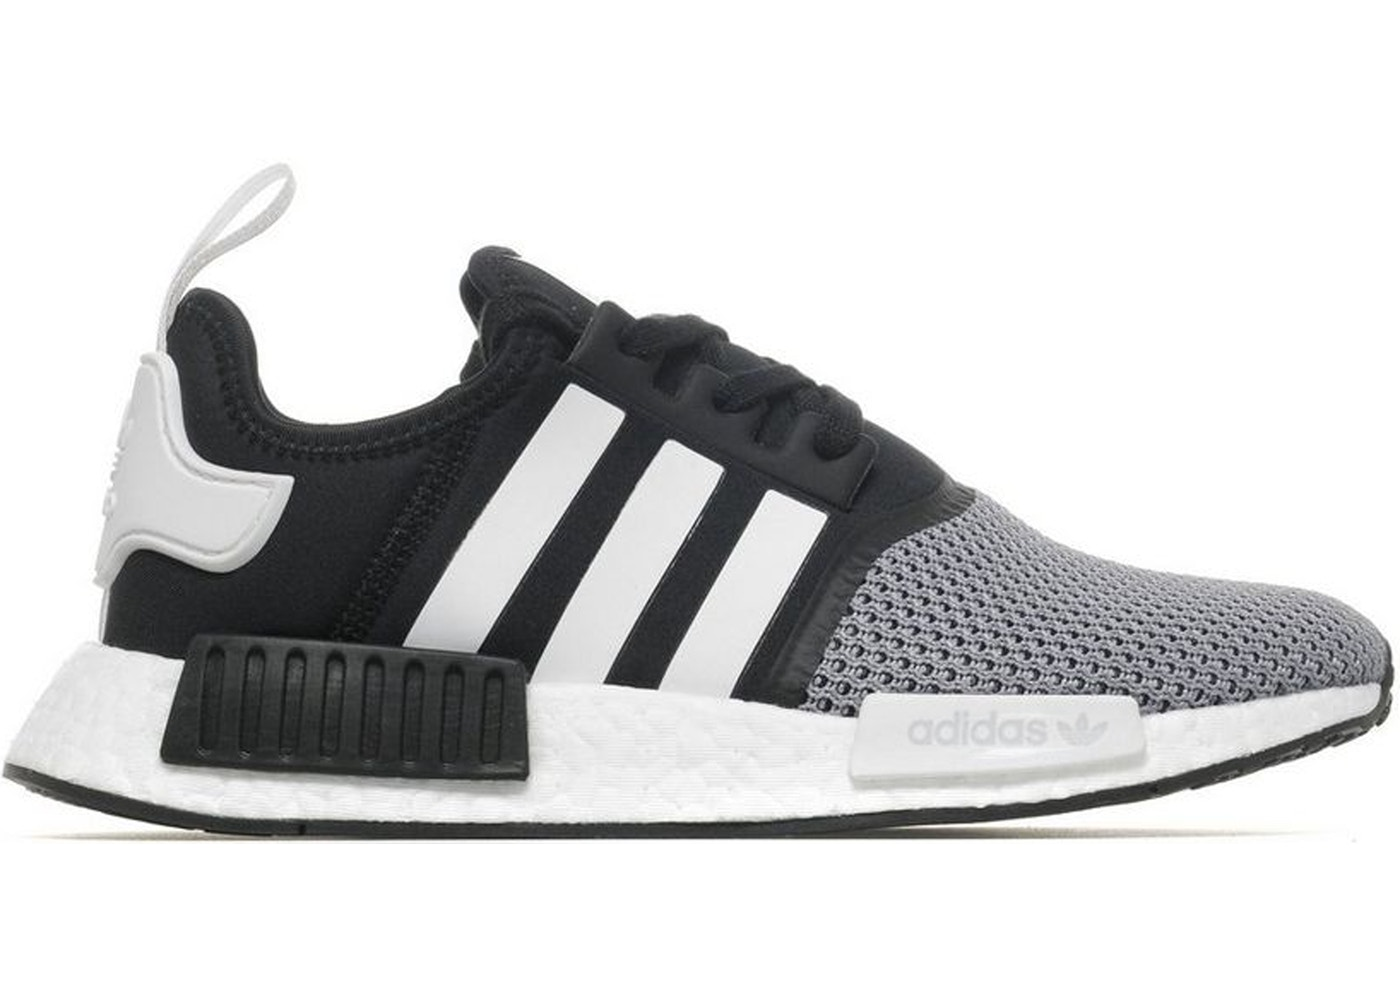 new arrival 10ea4 802ac HypeAnalyzer · adidas NMD R1 JD Sports Mesh Black Grey